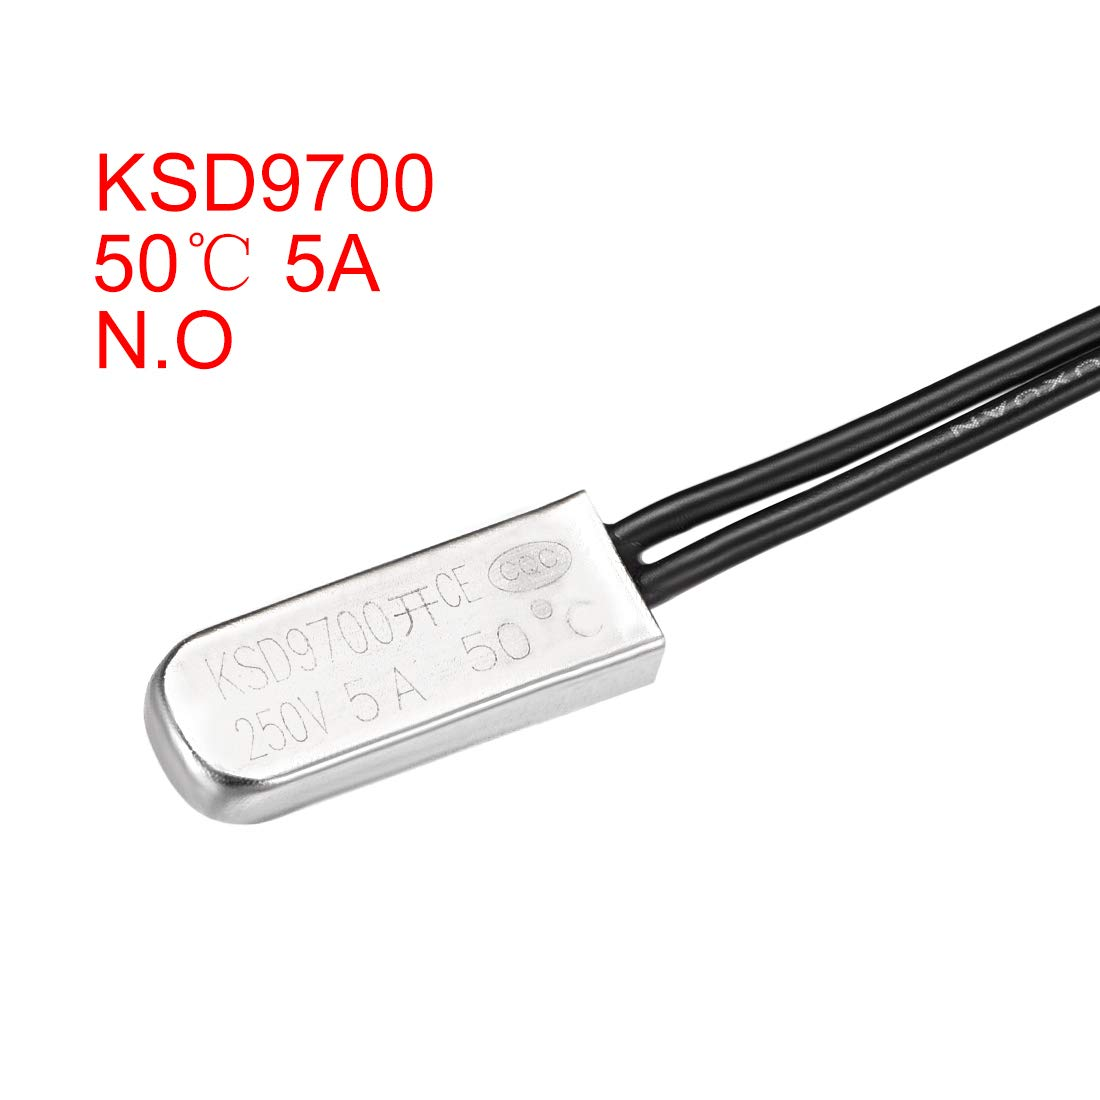 N.O 5A Metal Bimetal Temperature Controller 2pcs 40C Normally Open Temperature Switch Thermal Switch uxcell KSD9700 Thermostat